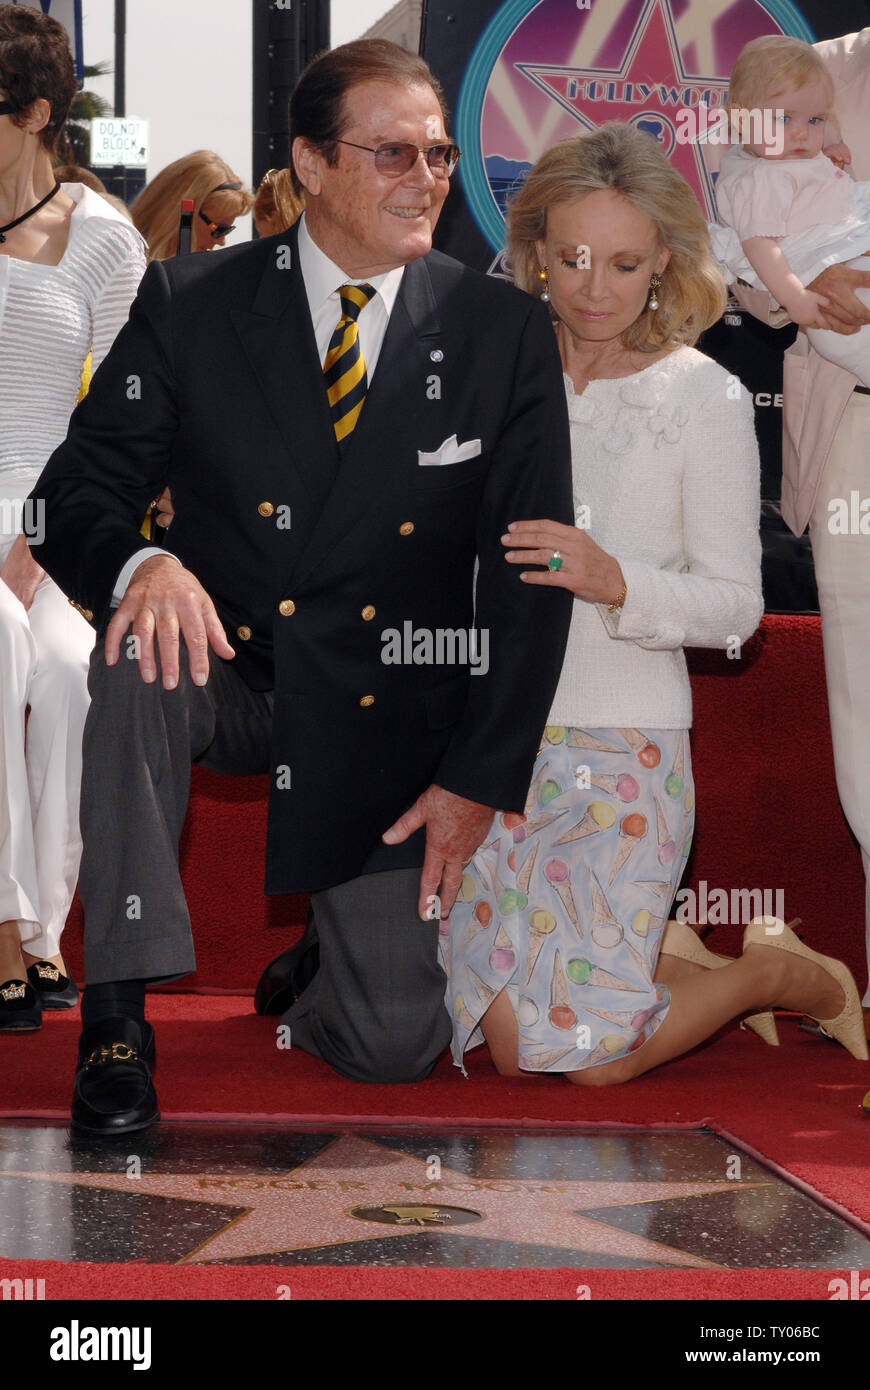 British actor Sir Roger Moore (L) and his wife, actress Christina Tholstrup pose during an unveiling ceremony honoring him with the 2,350th star on the Hollywood Walk of Fame in Los Angeles on October 11, 2007. Moore appeared in 1973 in his first James Bond film 'Live and Let Die.' He also starred as Simon Templar in the TV series 'The Saint.'  (UPI Photo/Jim Ruymen) - Stock Image